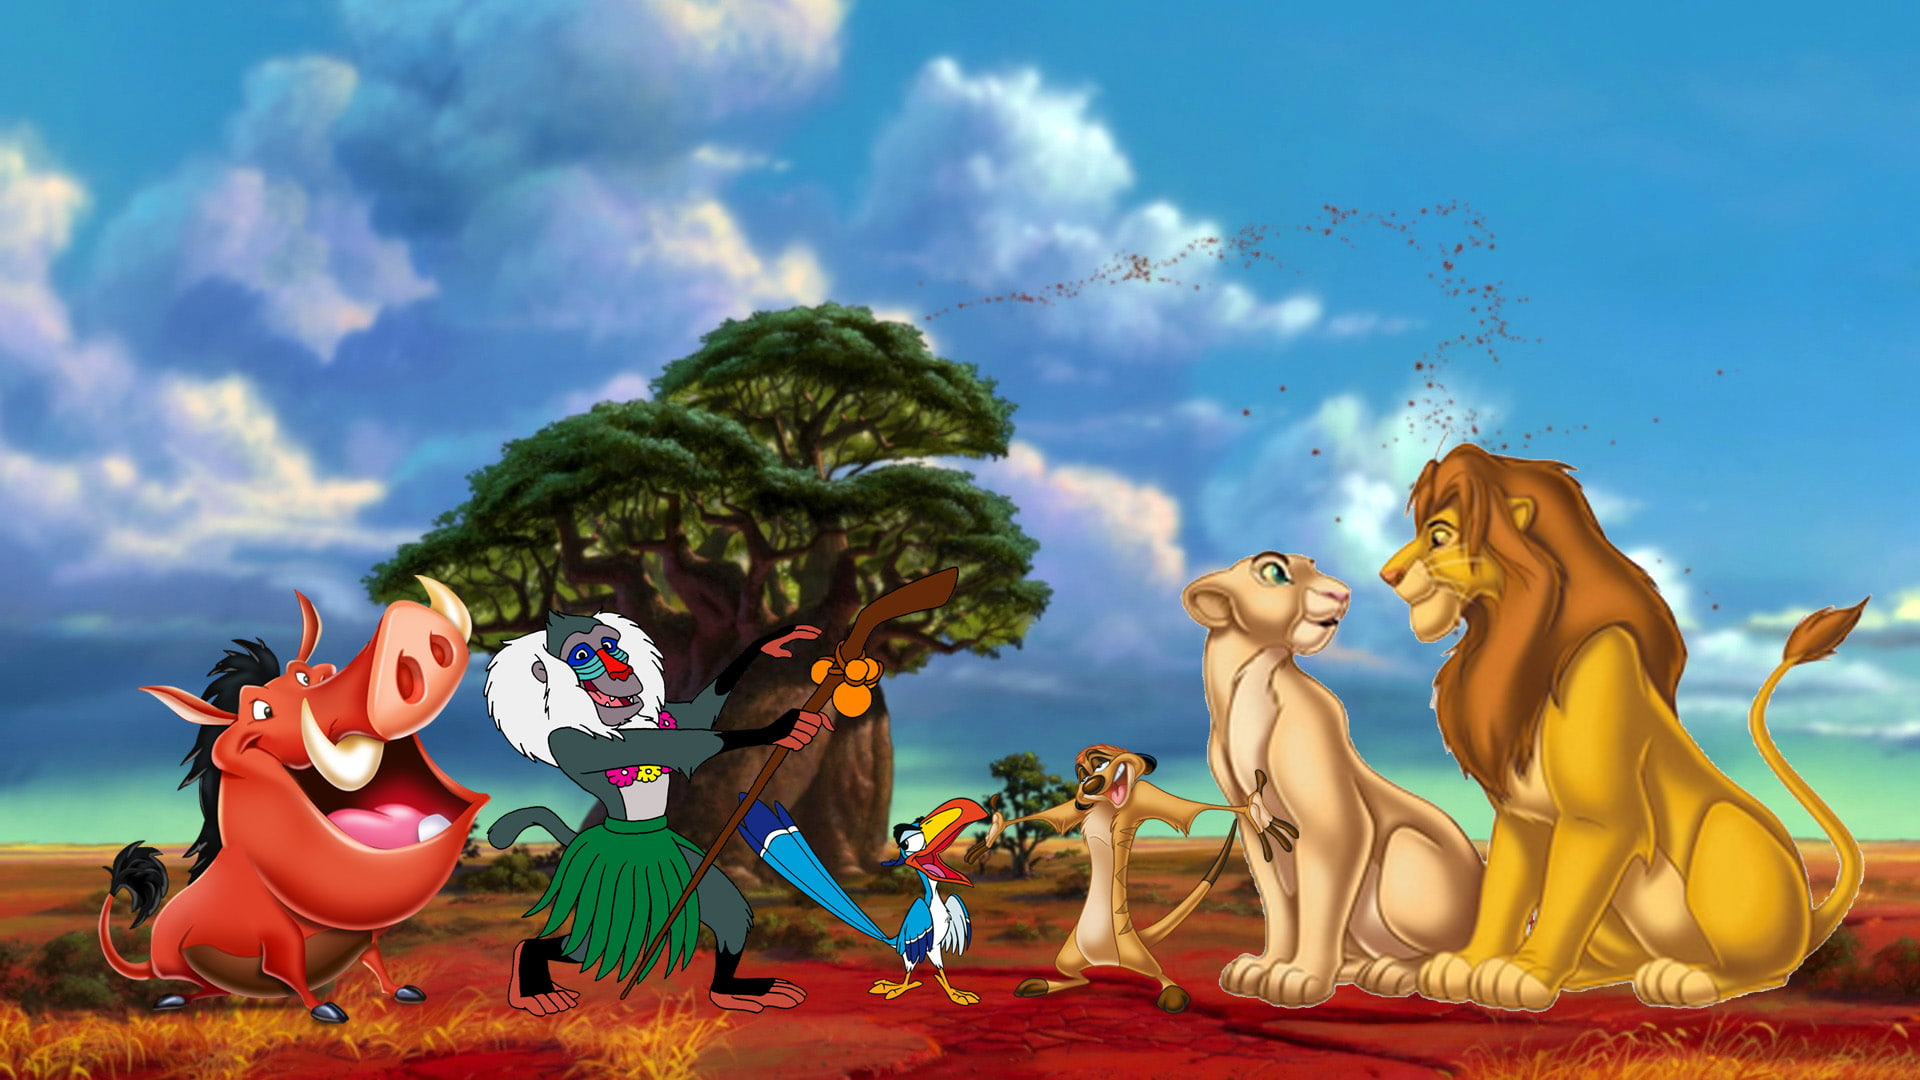 The Lion King Rafiki Friend Of Mufase He Presented - Lion King Toys 2019 , HD Wallpaper & Backgrounds